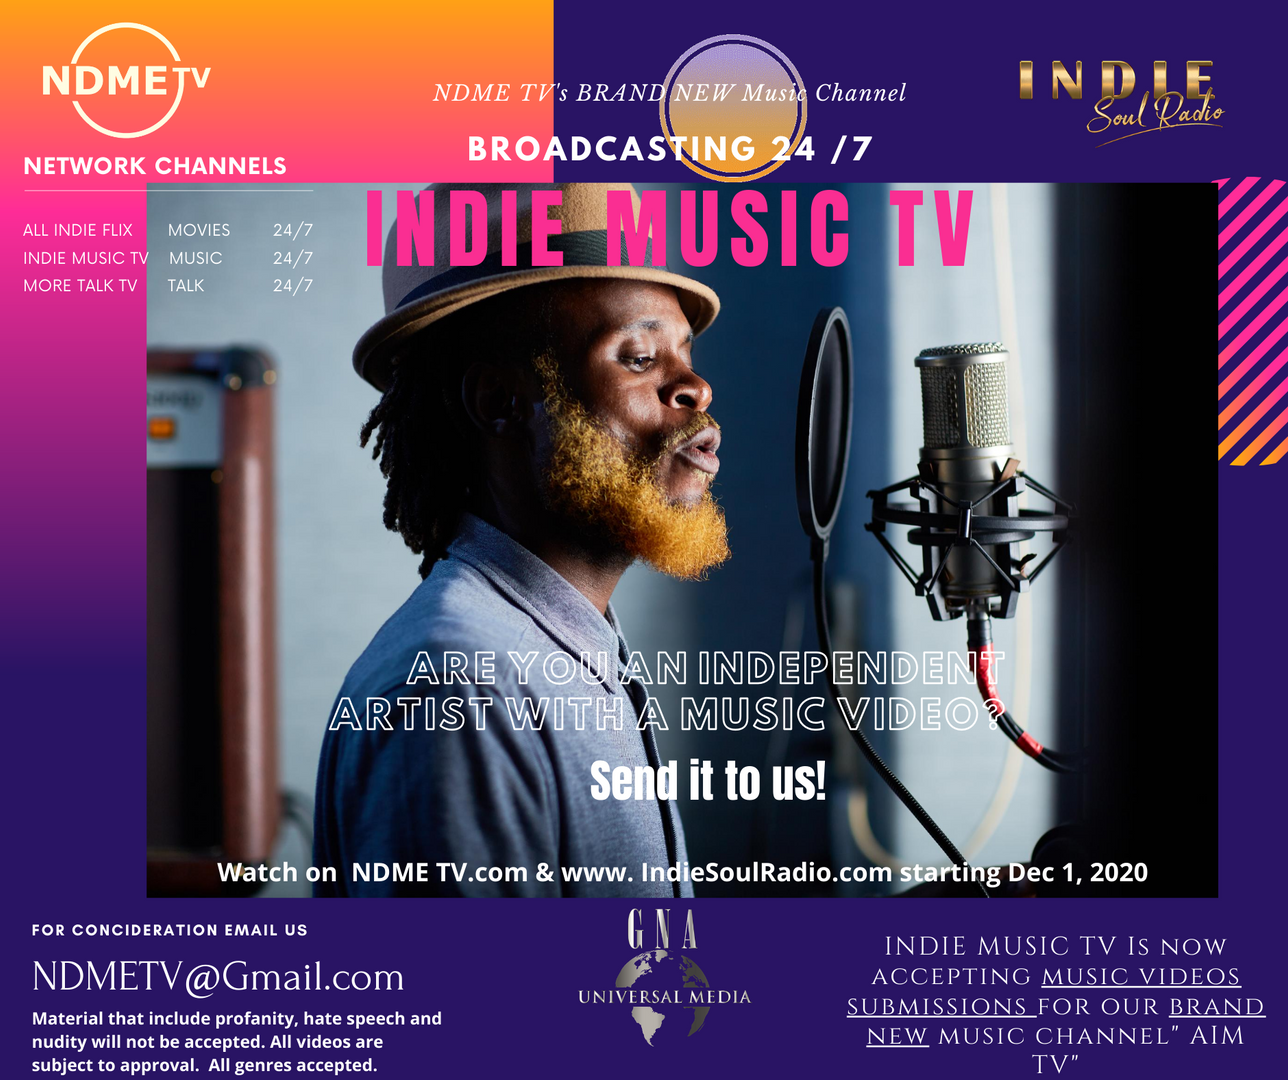 Indie Music TV